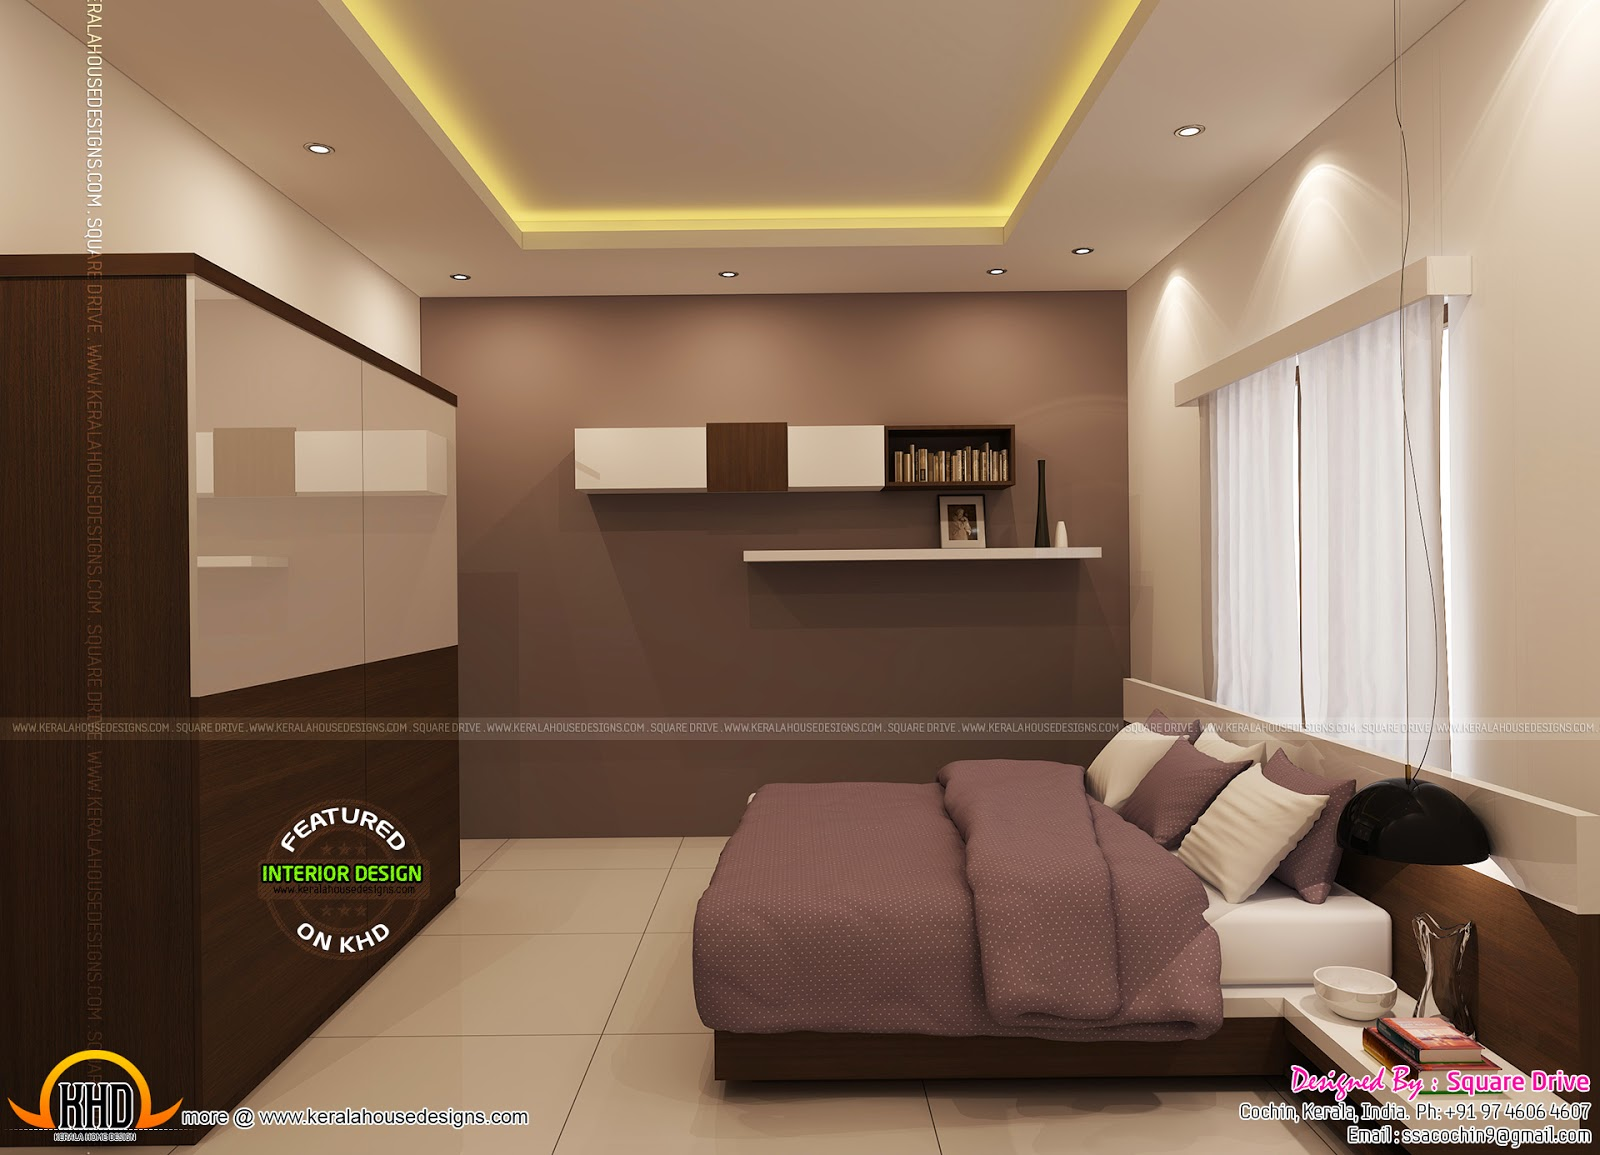 interior design your home bedroom interior designs kerala home design and floor plans 18916